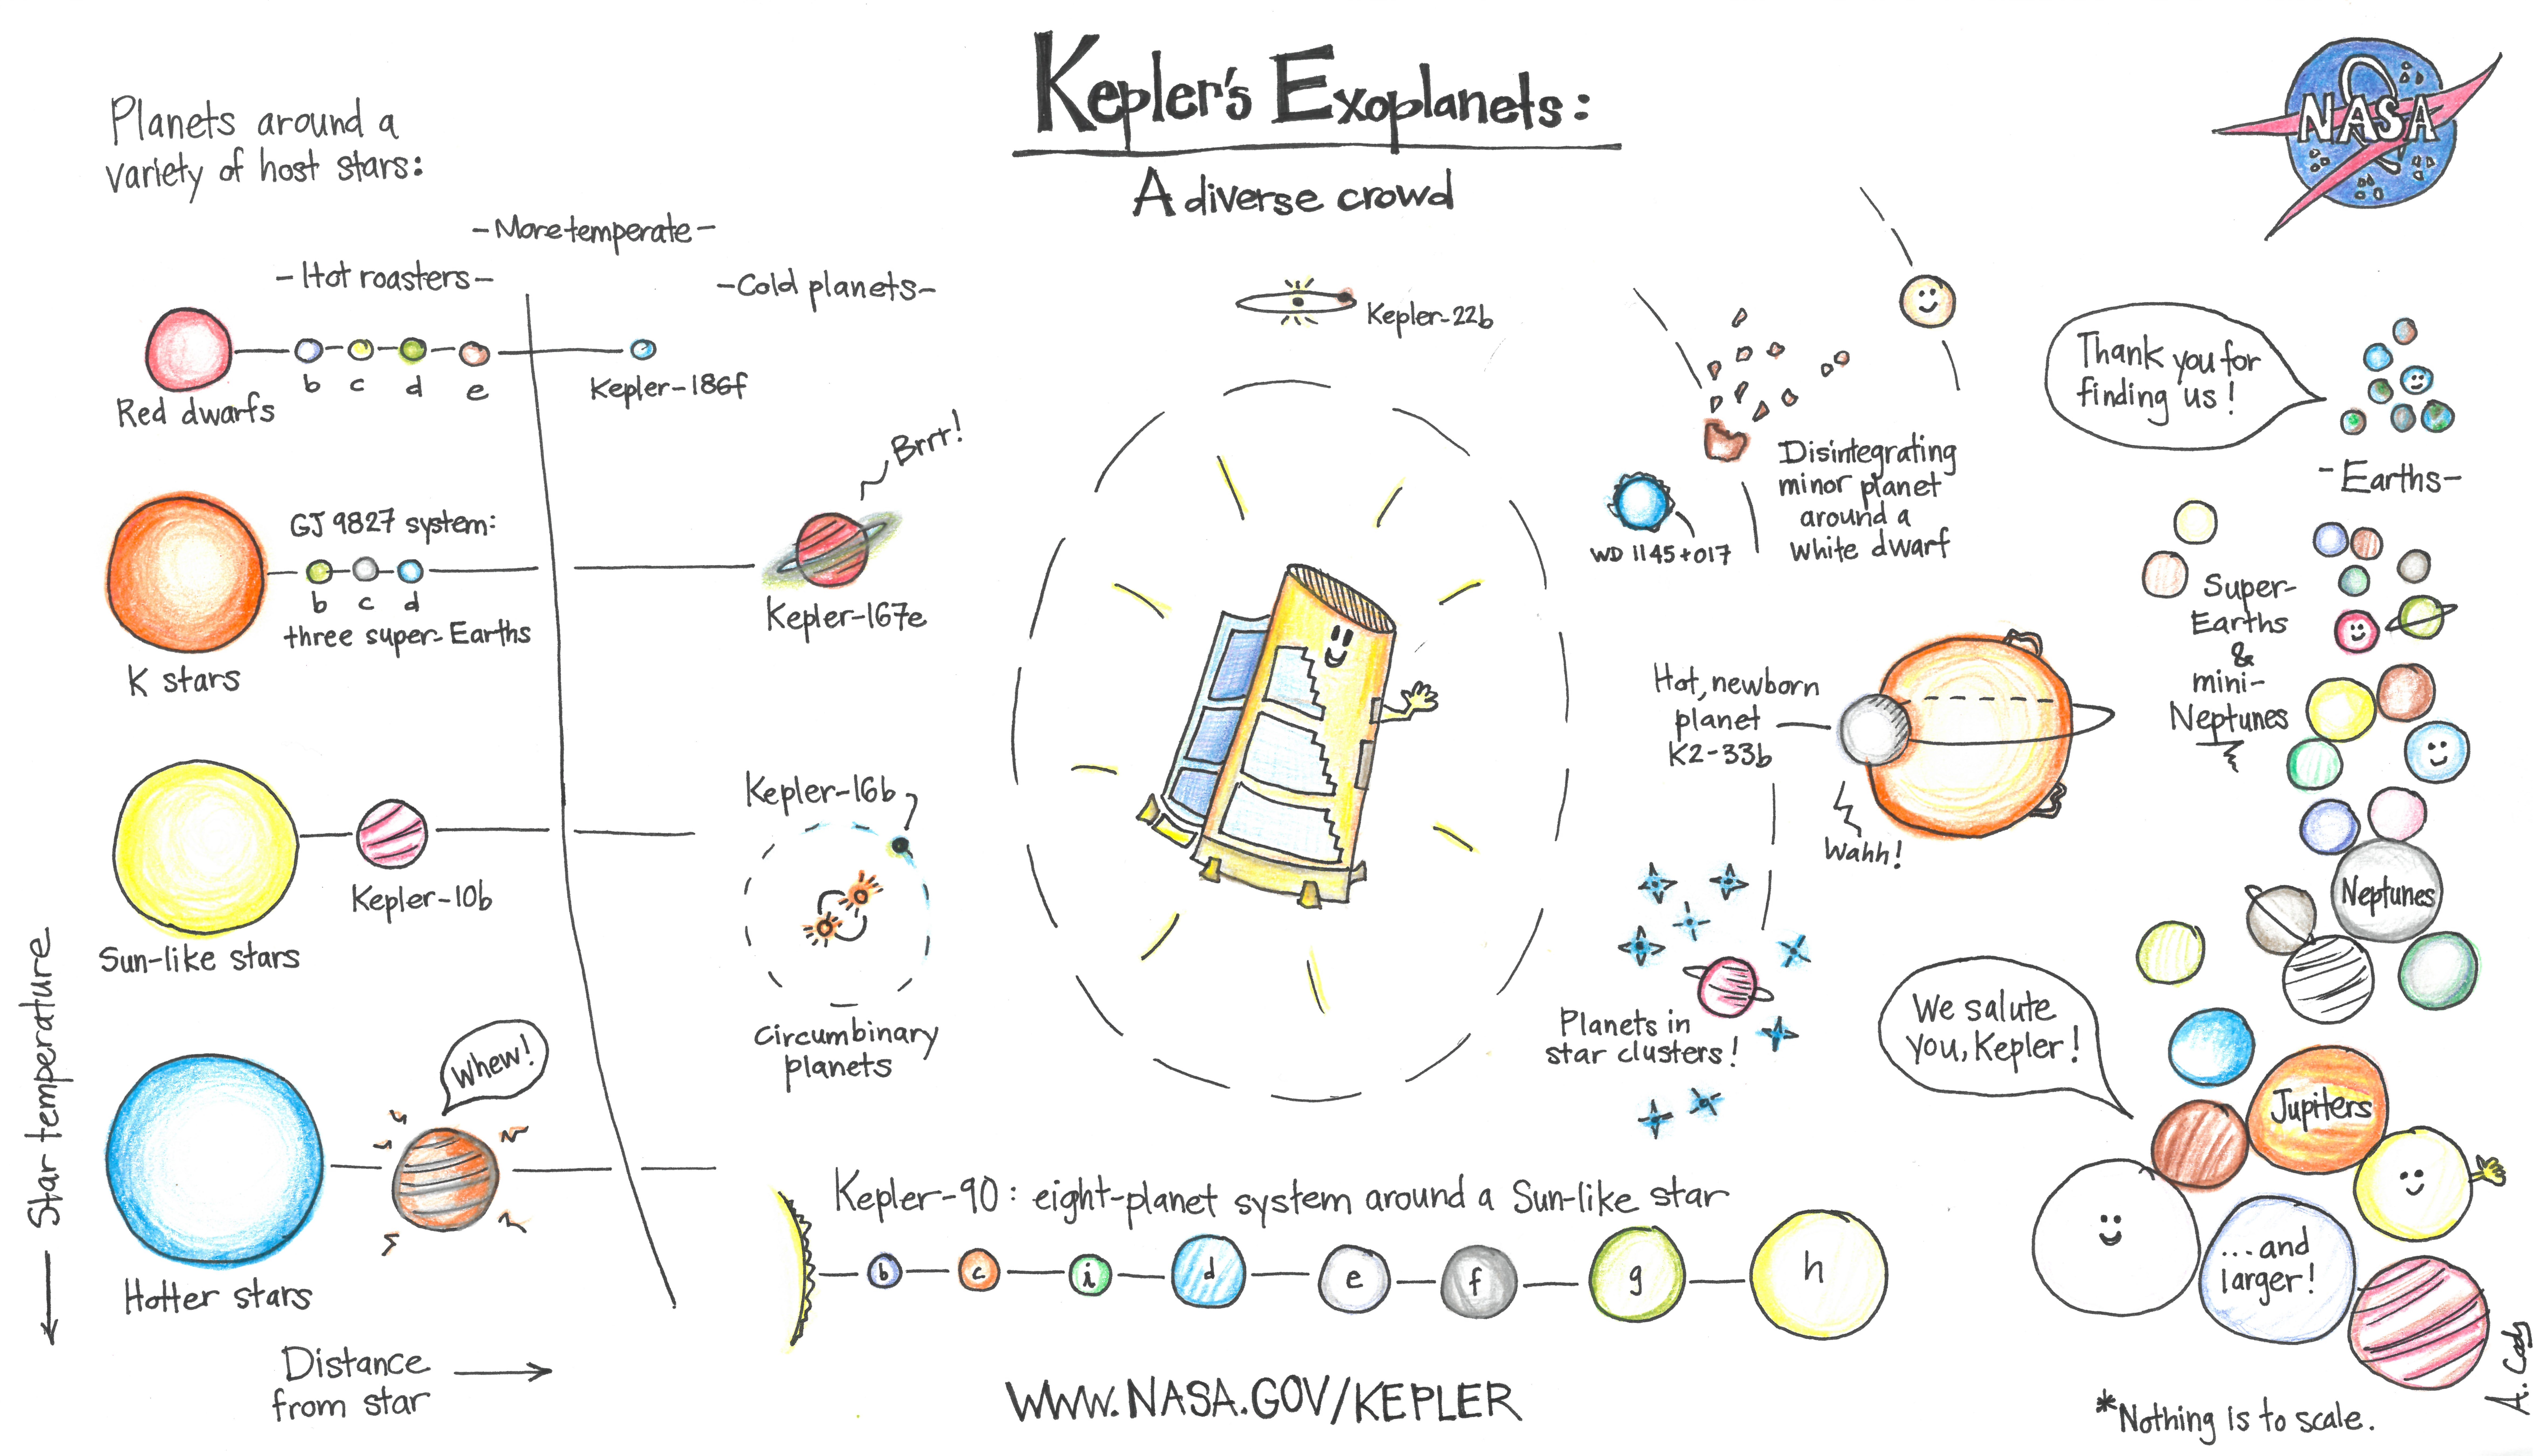 Cartoon of NASA's Kepler spacecraft and its discoveries.